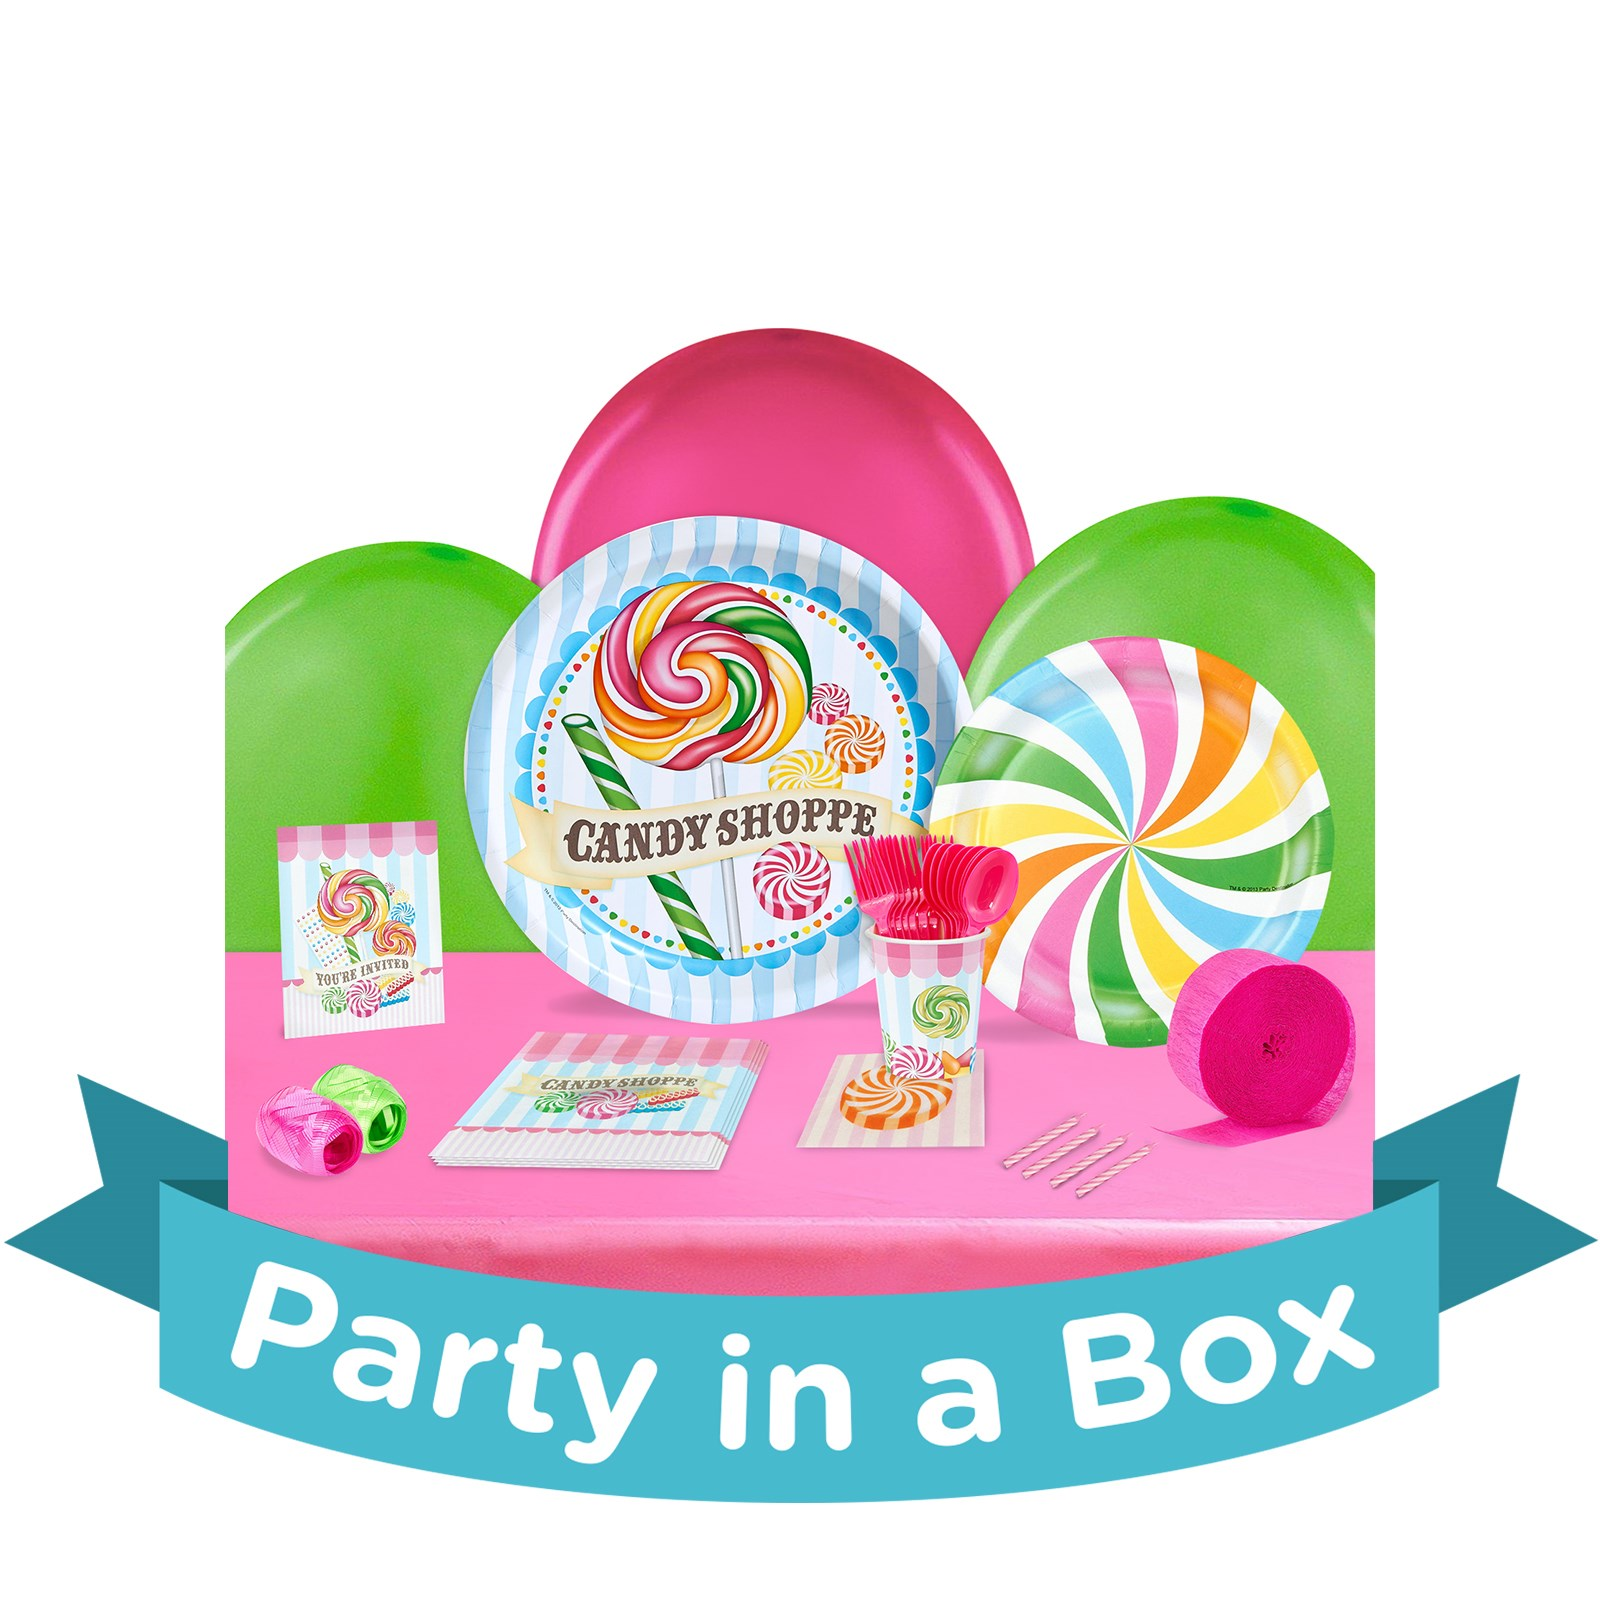 Candy Shoppe Party in a Box - Deluxe with Favors - 8 Guests